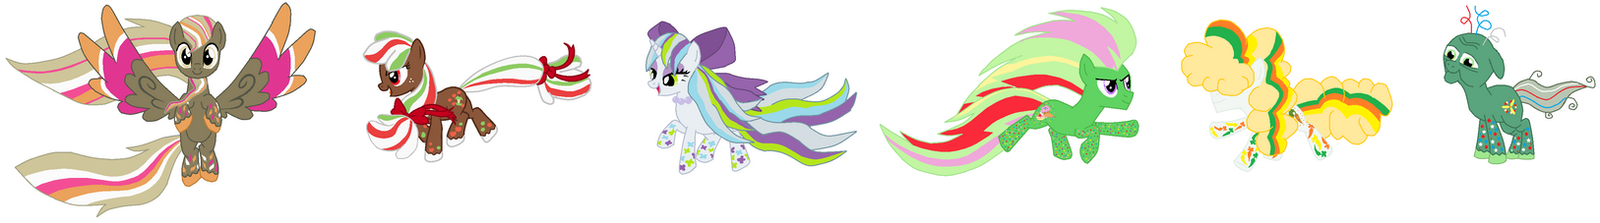 Mane 6 Pets Rainbow Power by FreshlyBaked2014 on DeviantArt